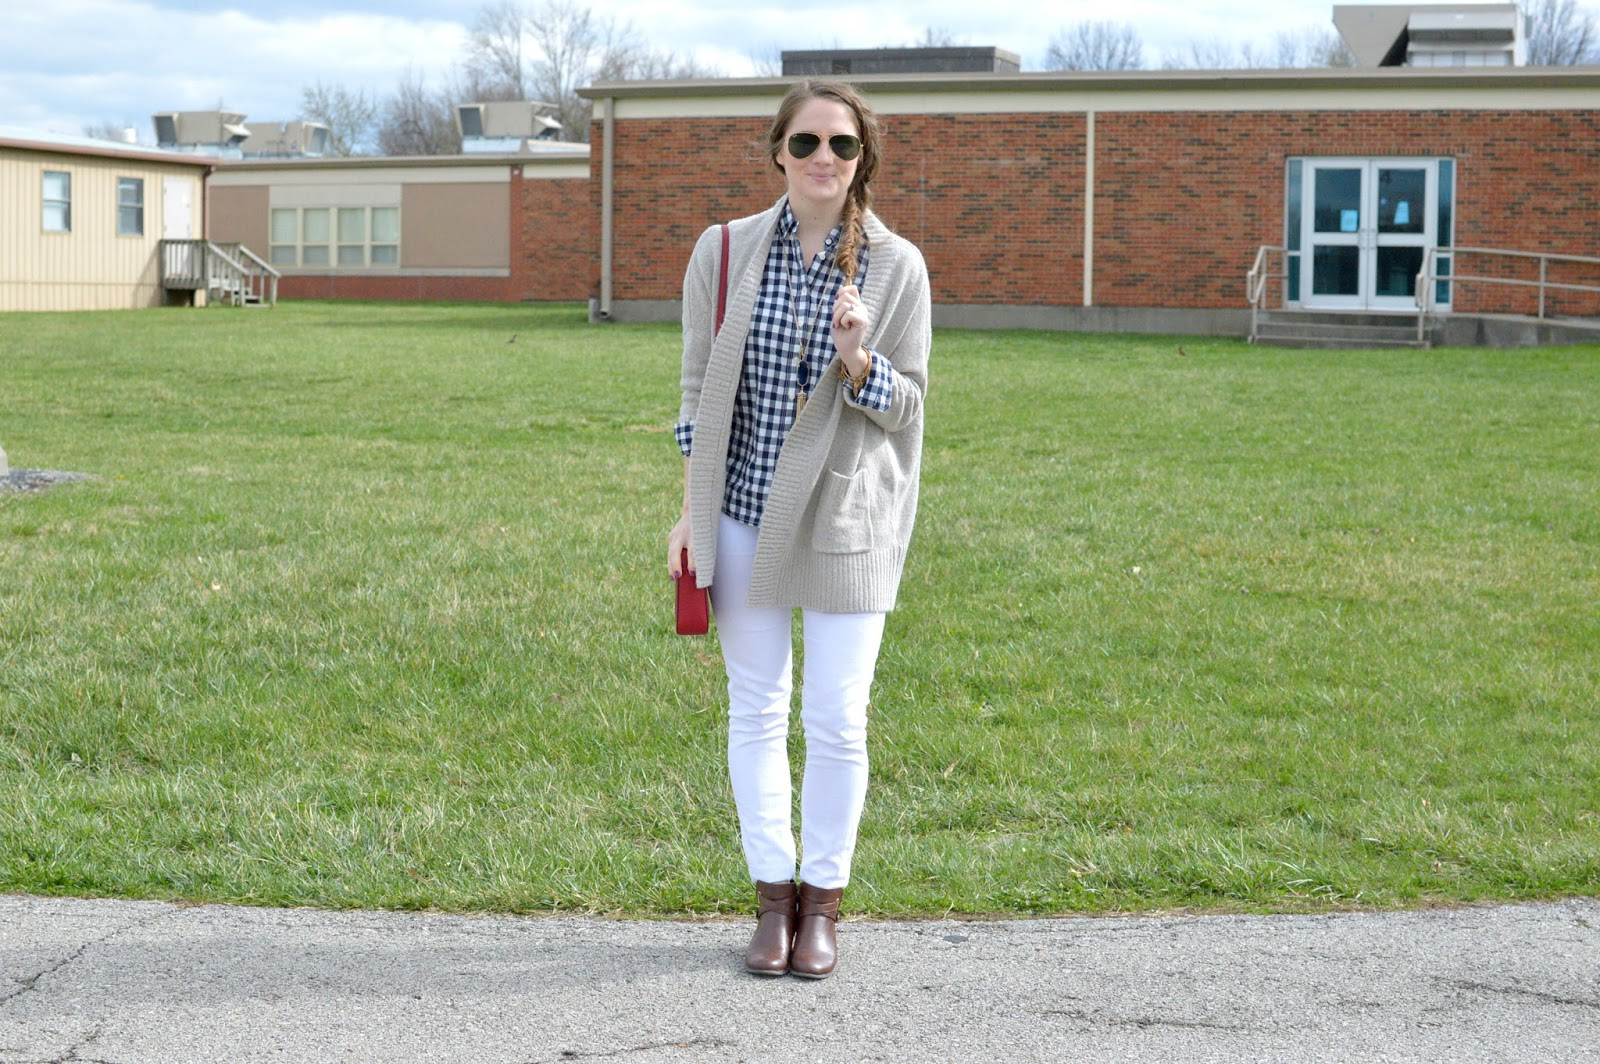 cute outfits for spring: navy gingham and white denim